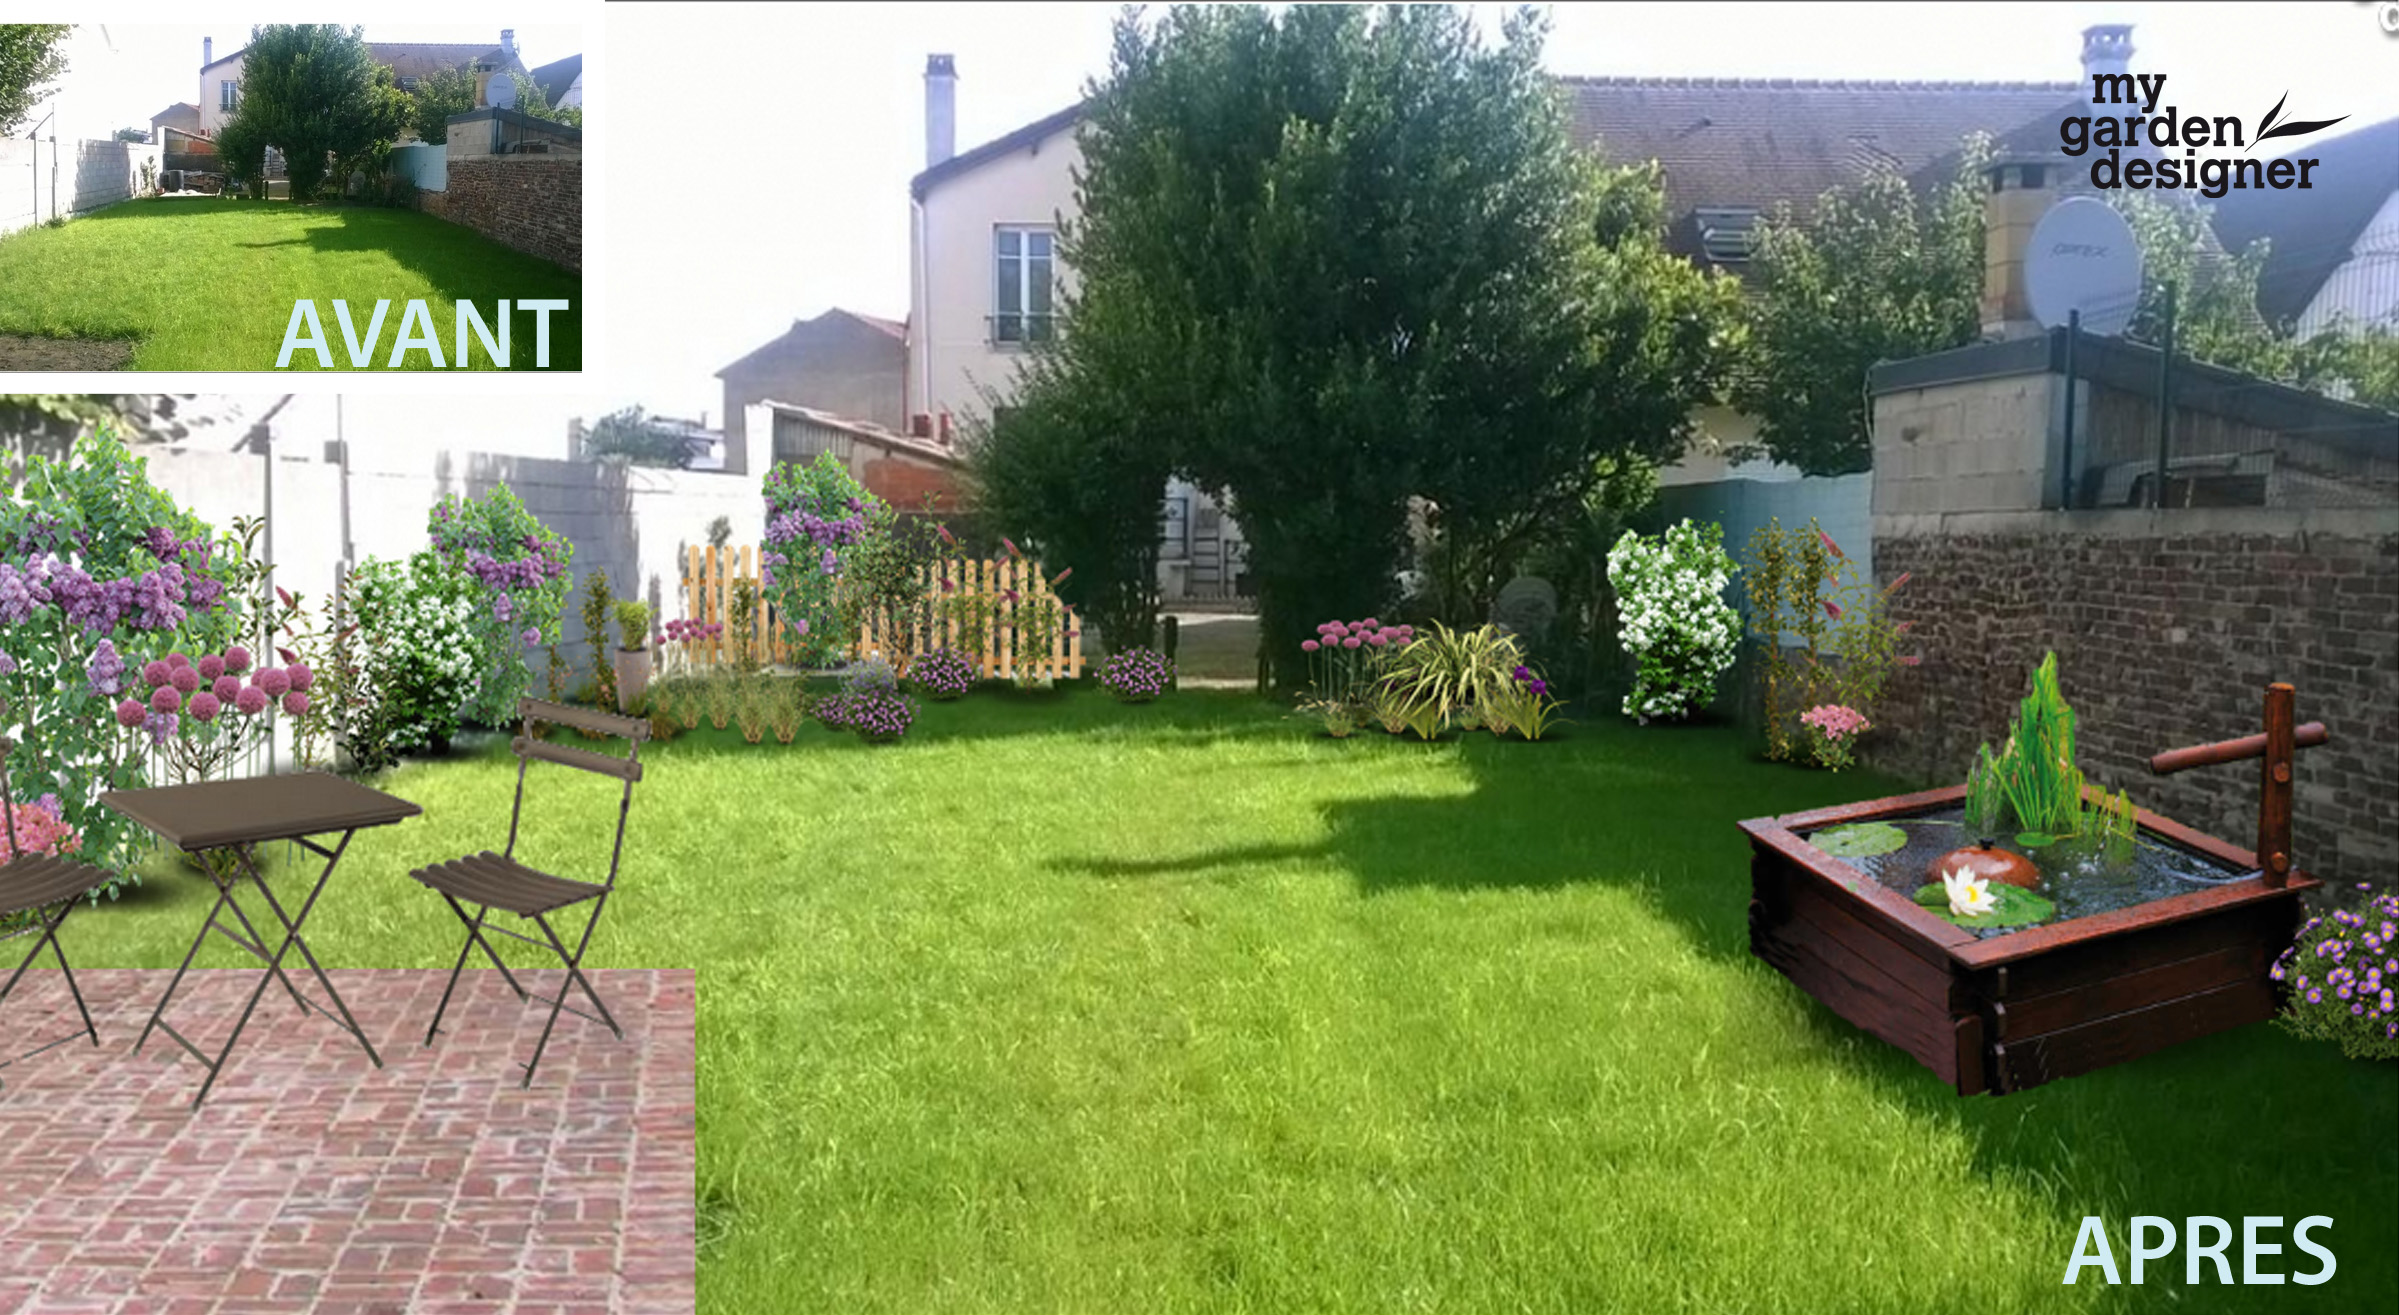 Am nager un jardin carr en ile de france monjardin for Amenagement de jardin